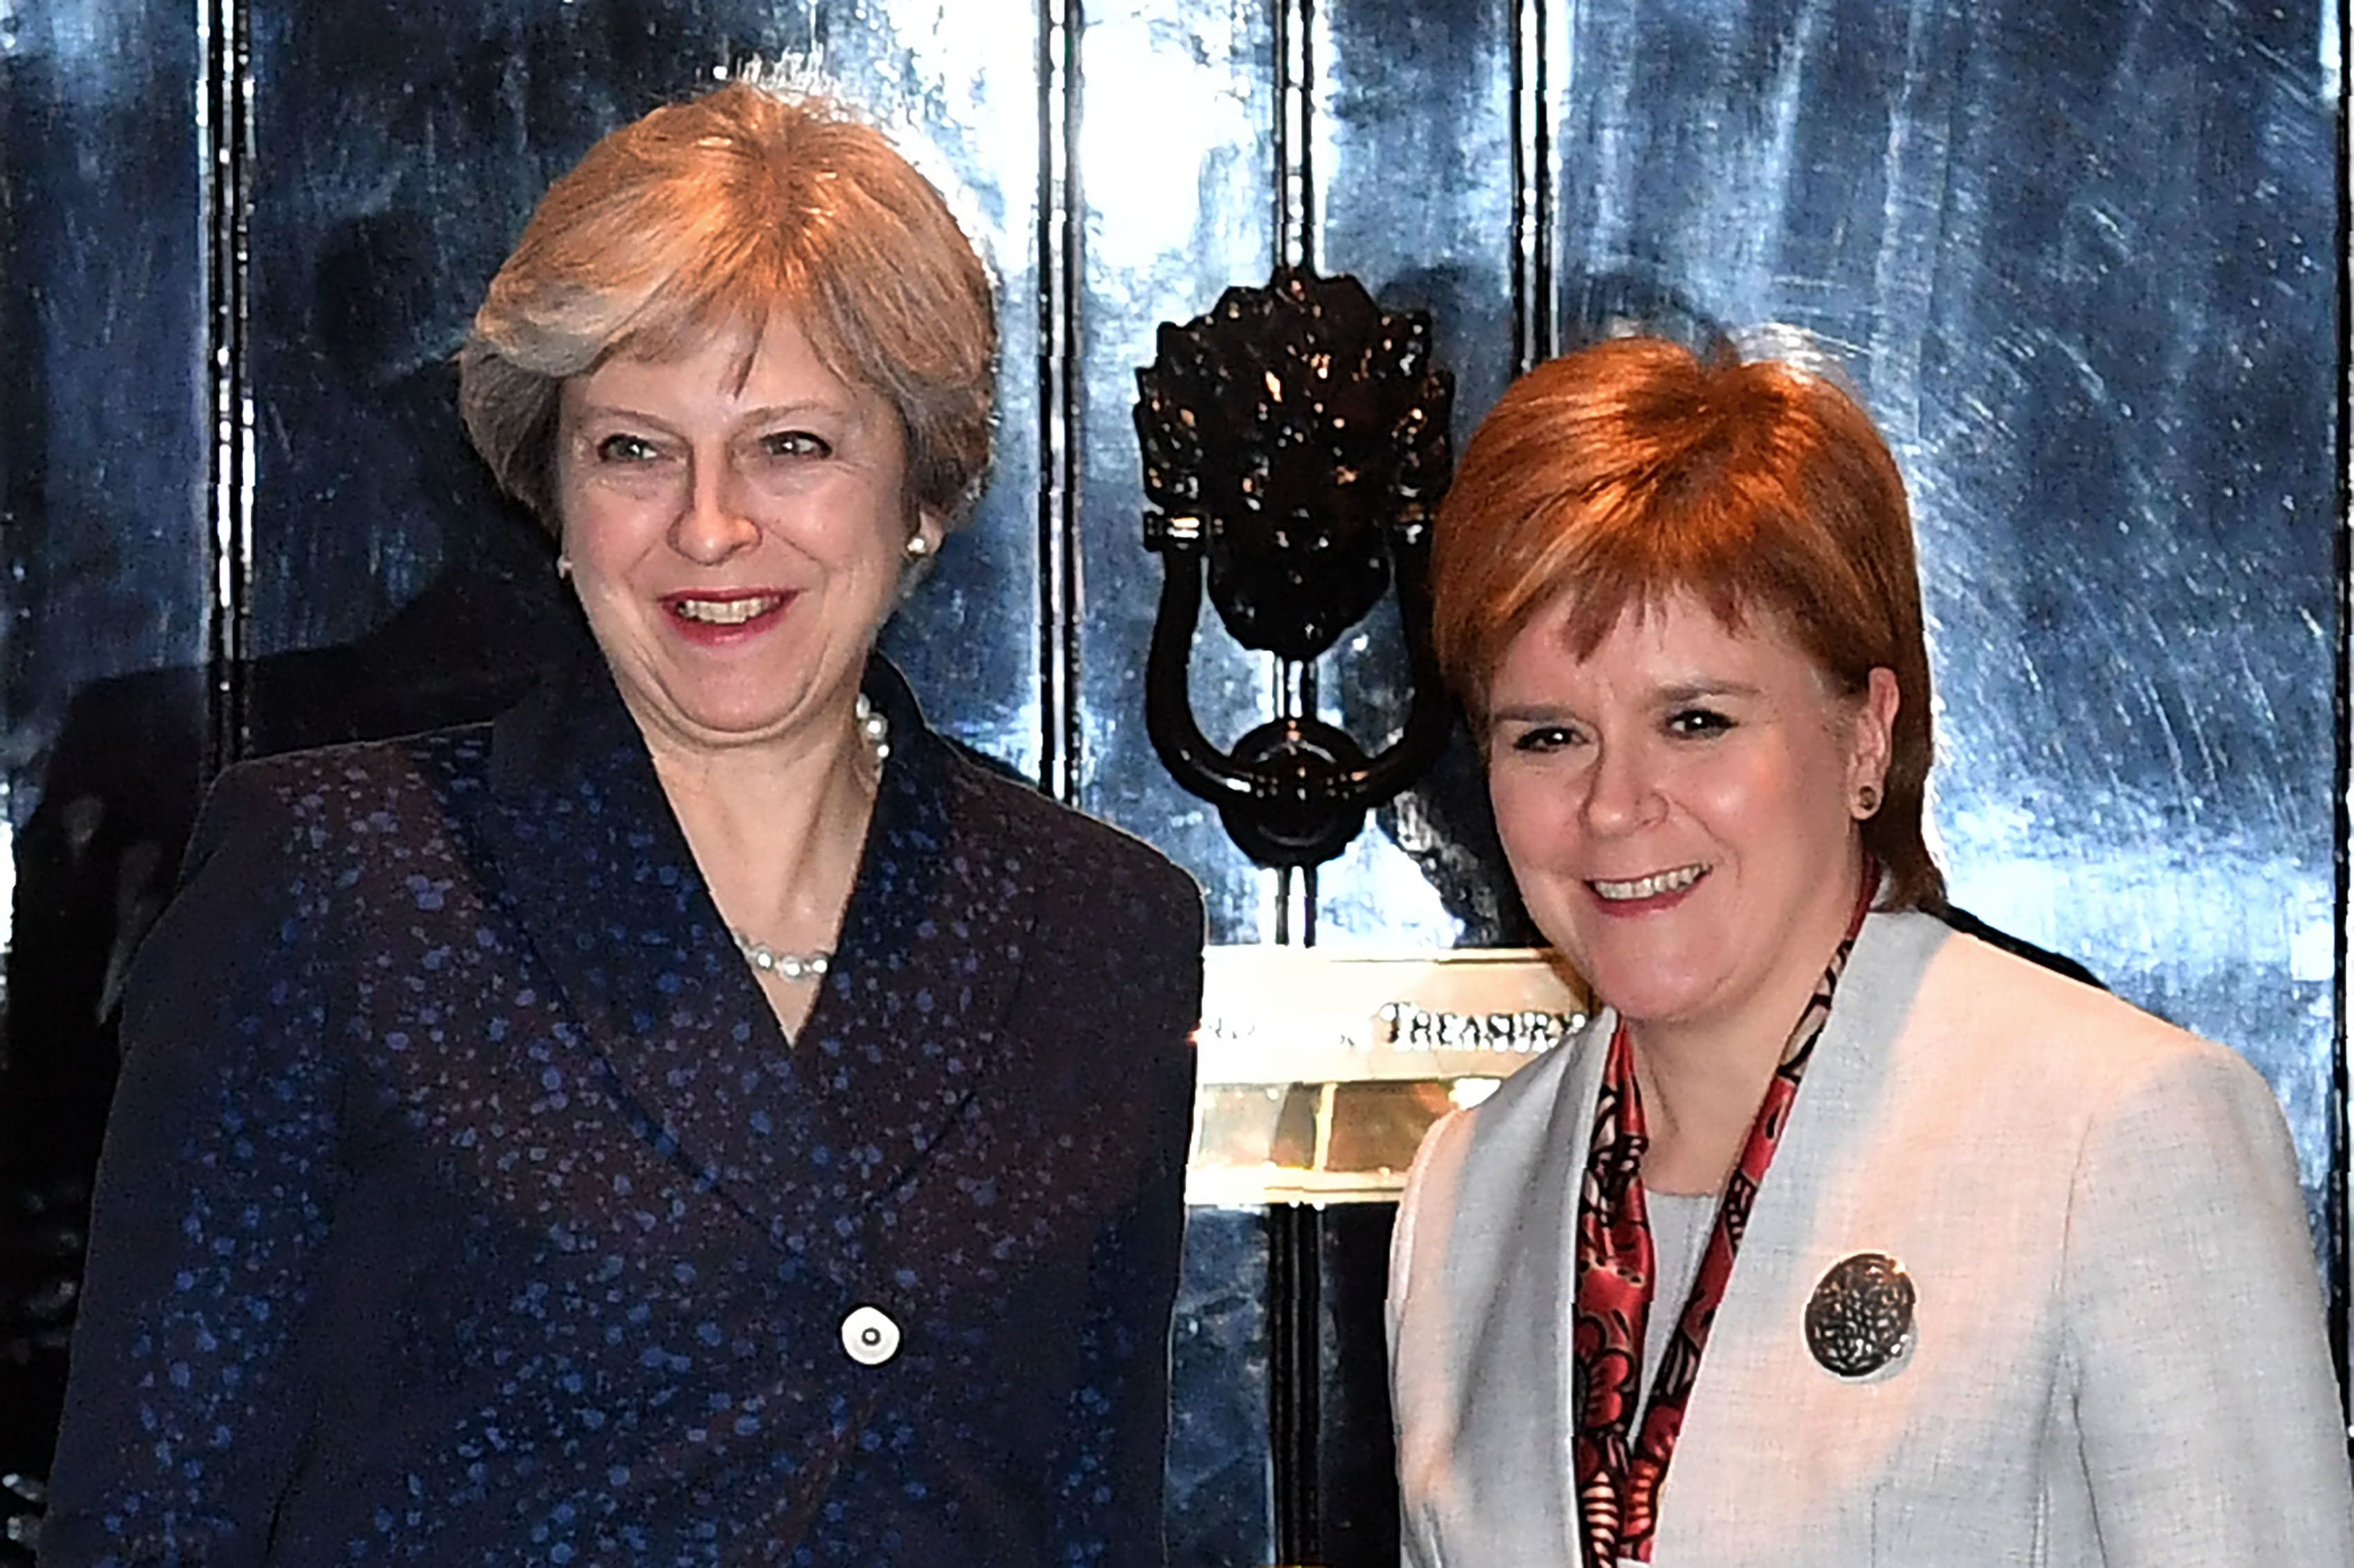 Theresa May and Nicola Sturgeon.